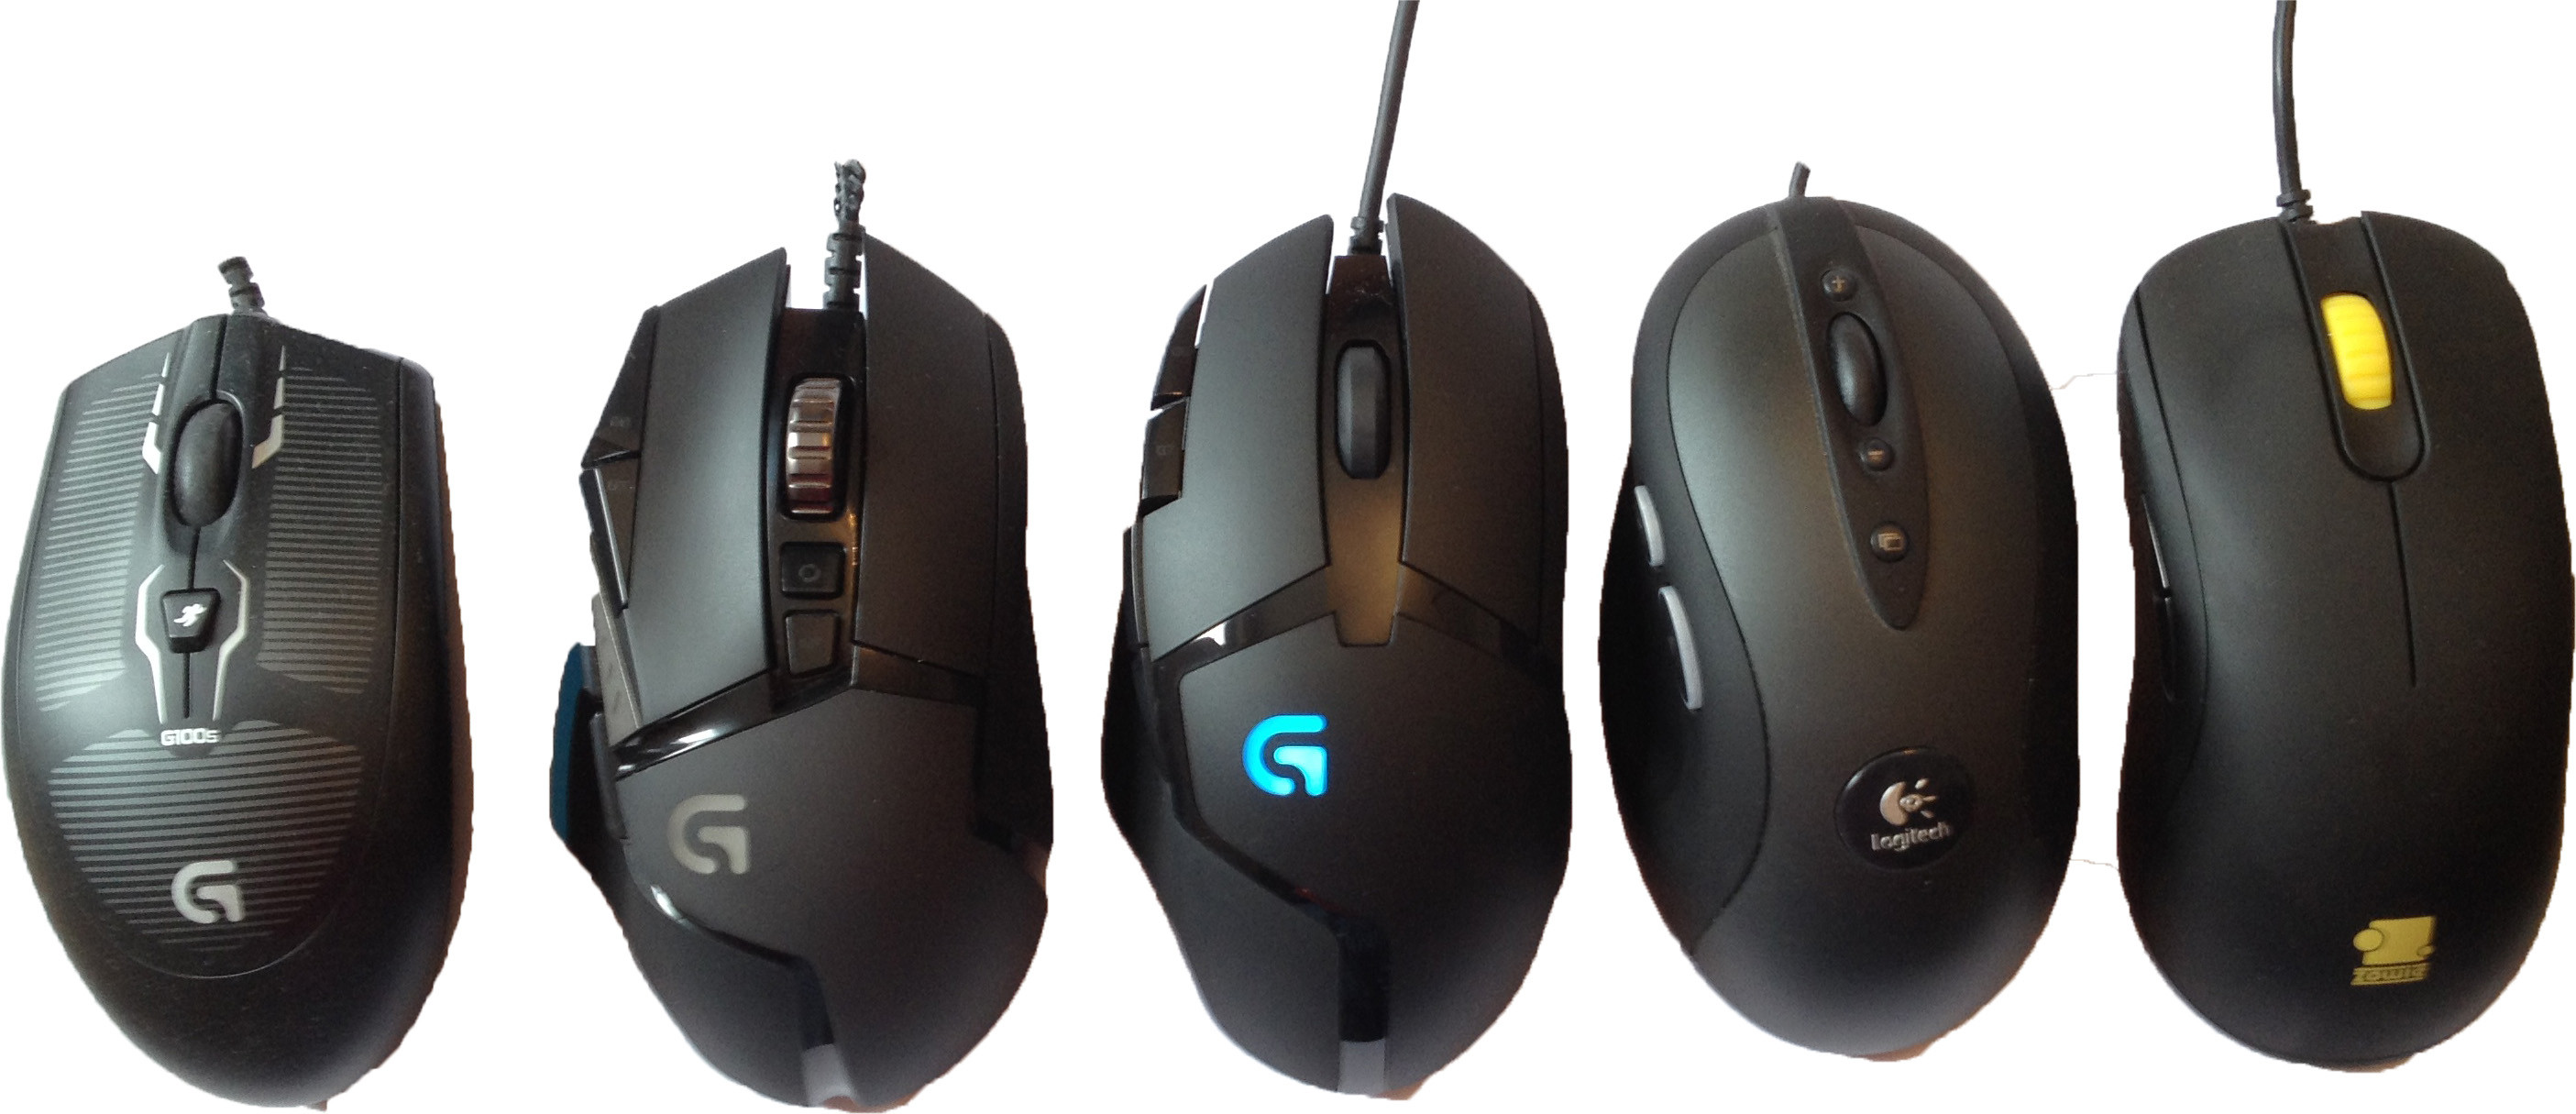 392a049c31d Logitech G402 Hyperion Fury Gaming Mouse review - by Ino - Page 67 -  Overclock.net - An Overclocking Community